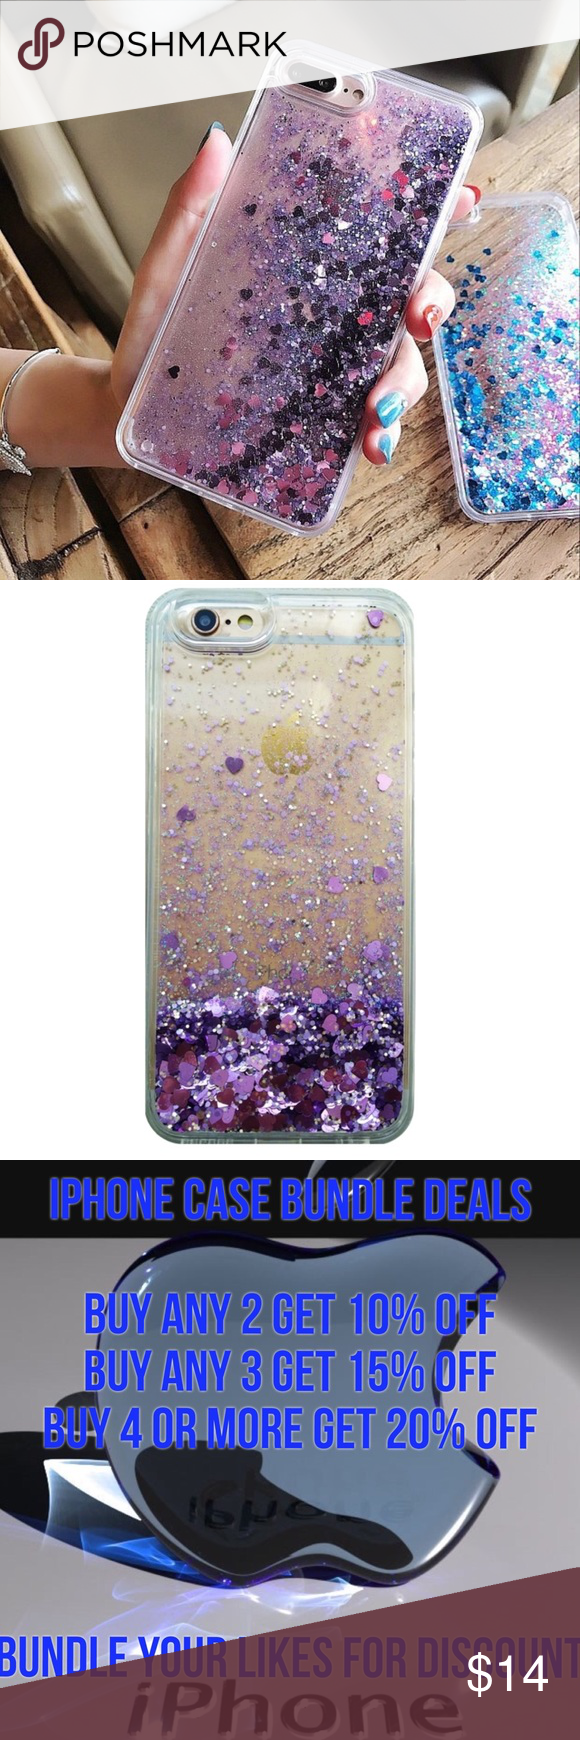 iPhone 7 Plus Liquid Glitter Quick Sand Case ➡️Discount Only With Bundle Of 2 Or More Items⬅️  Show off your iPhone 7 Plus phone while protecting it from bumps and scratches.  * High Quality Hardshell Case * Gorgeous Purple Glitter with Hearts  * Bump/ Anti Shock  * Fitted Design * New In Package  * Same Or Next Day Shipping Accessories